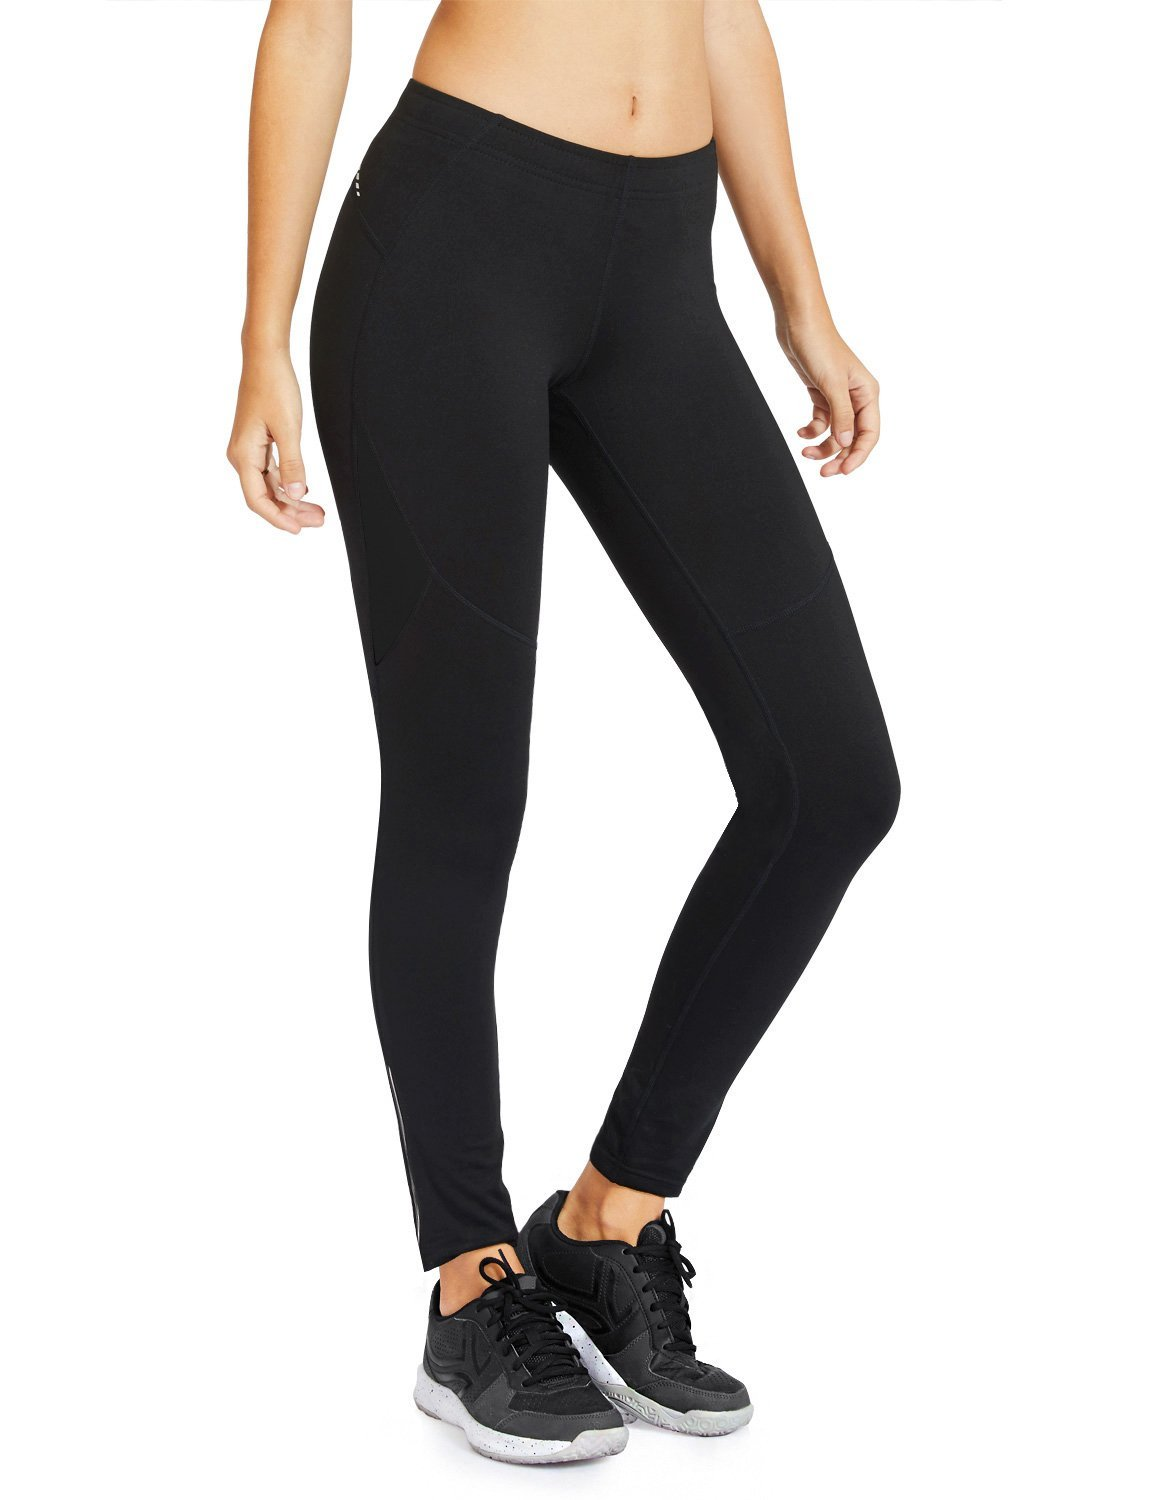 Baleaf Womens Thermal Fleece Athletic Running Cycling Tights